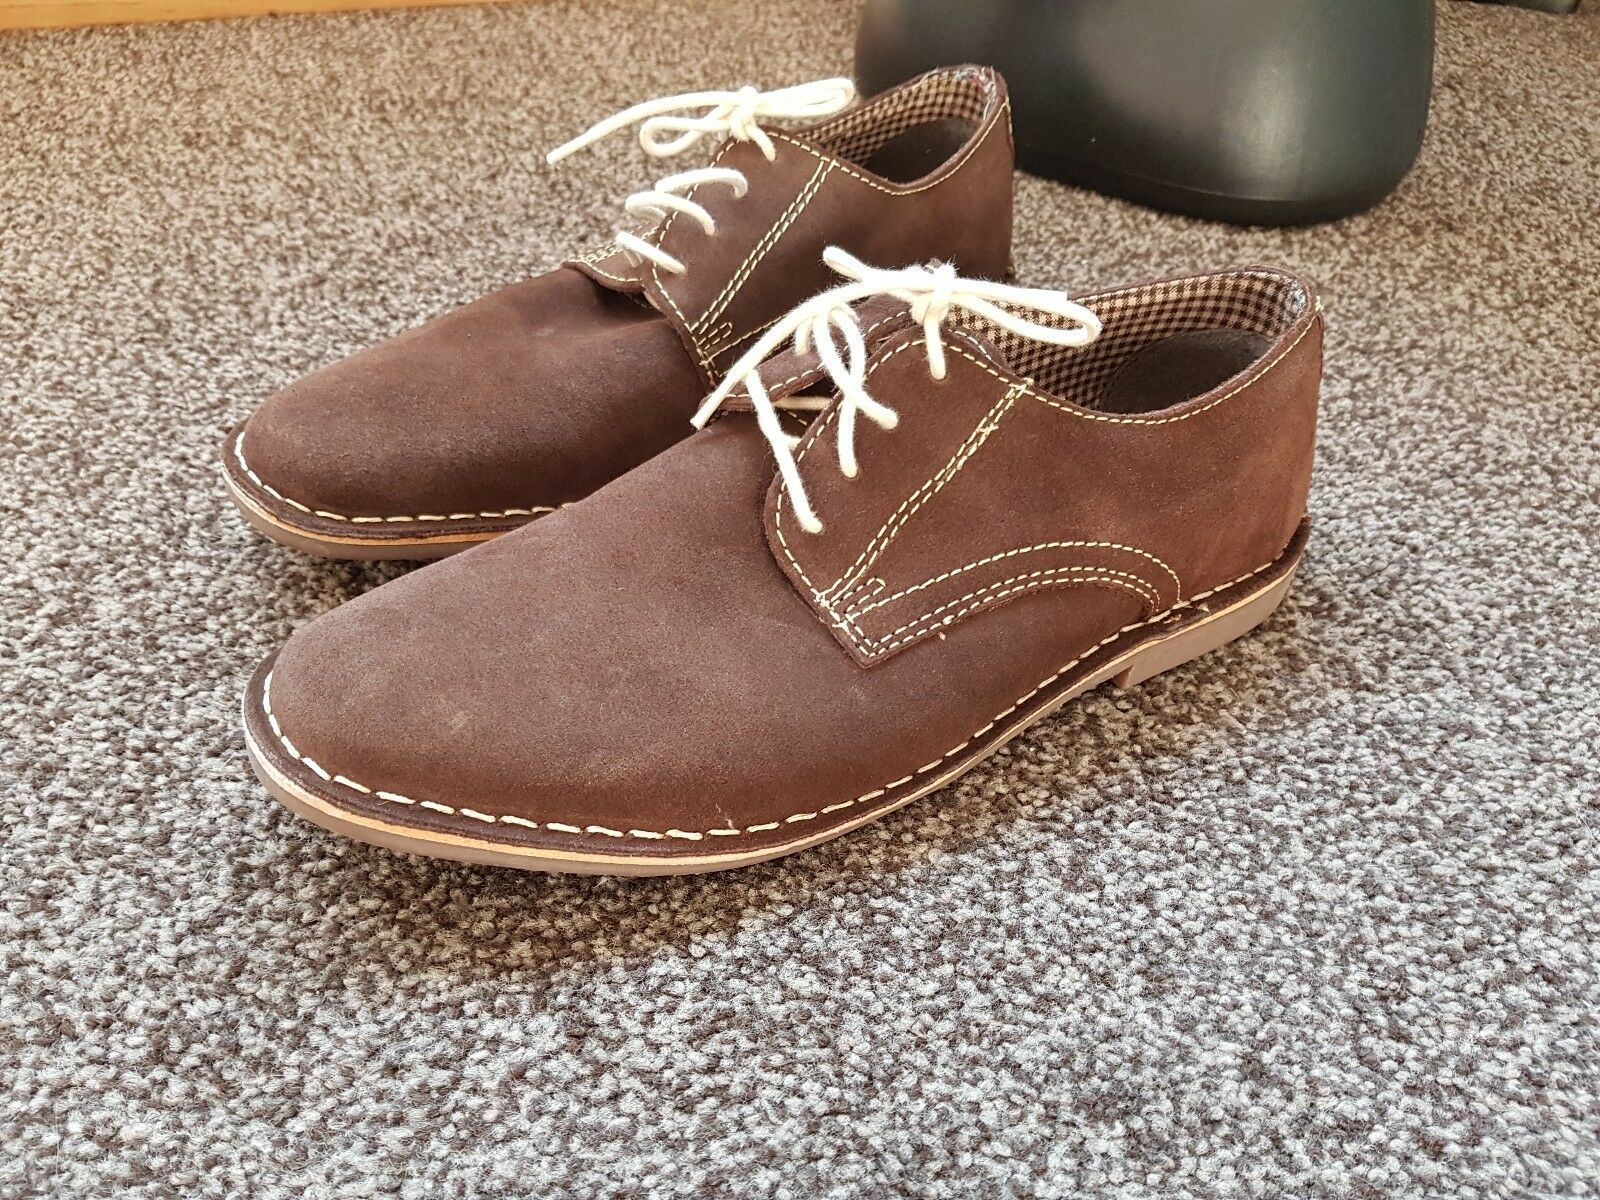 HOWICK BROWN SUEDE SHOES UK 10 NEW FREE UK PP